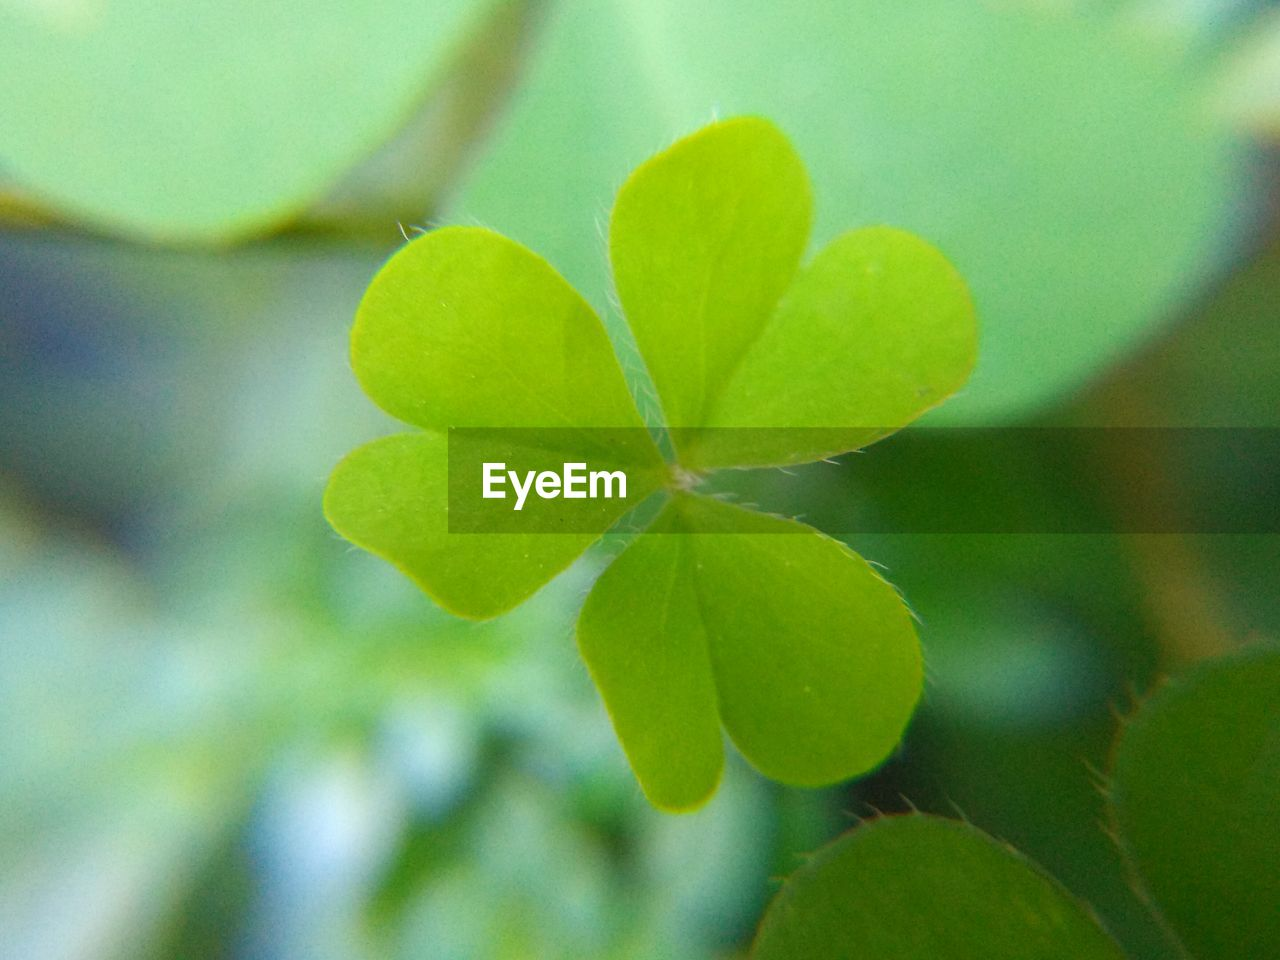 leaf, plant part, growth, plant, green color, close-up, beauty in nature, no people, day, nature, selective focus, focus on foreground, outdoors, freshness, clover, fragility, vulnerability, high angle view, tranquility, beginnings, leaves